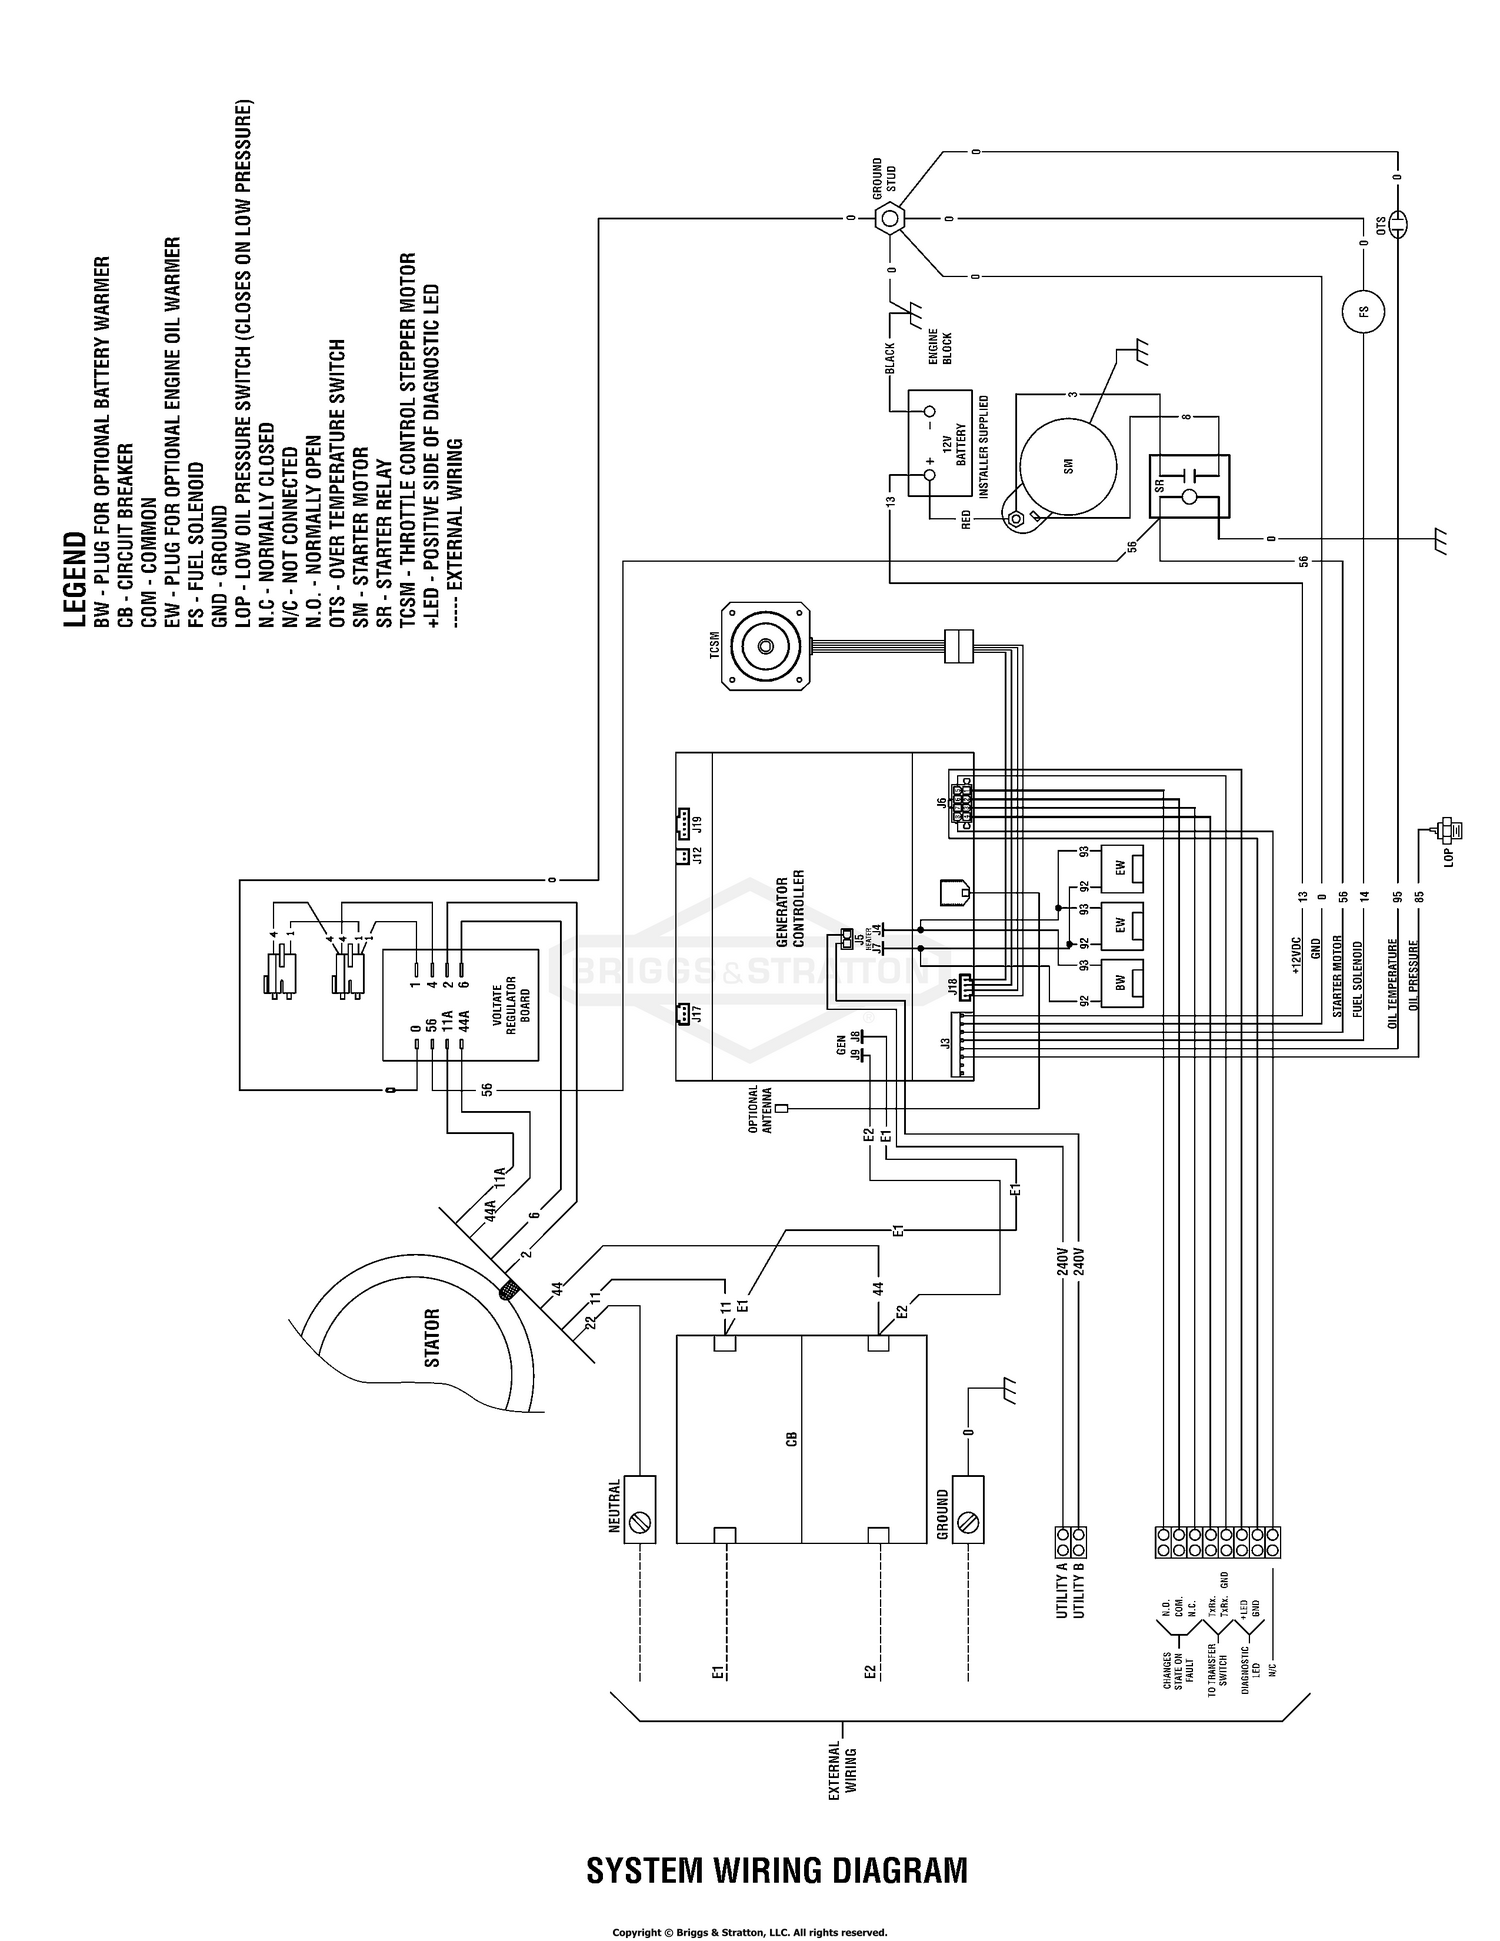 briggs and stratton generator wiring diagram briggs  amp  stratton power products del 26072017021729 040360ca  briggs  amp  stratton power